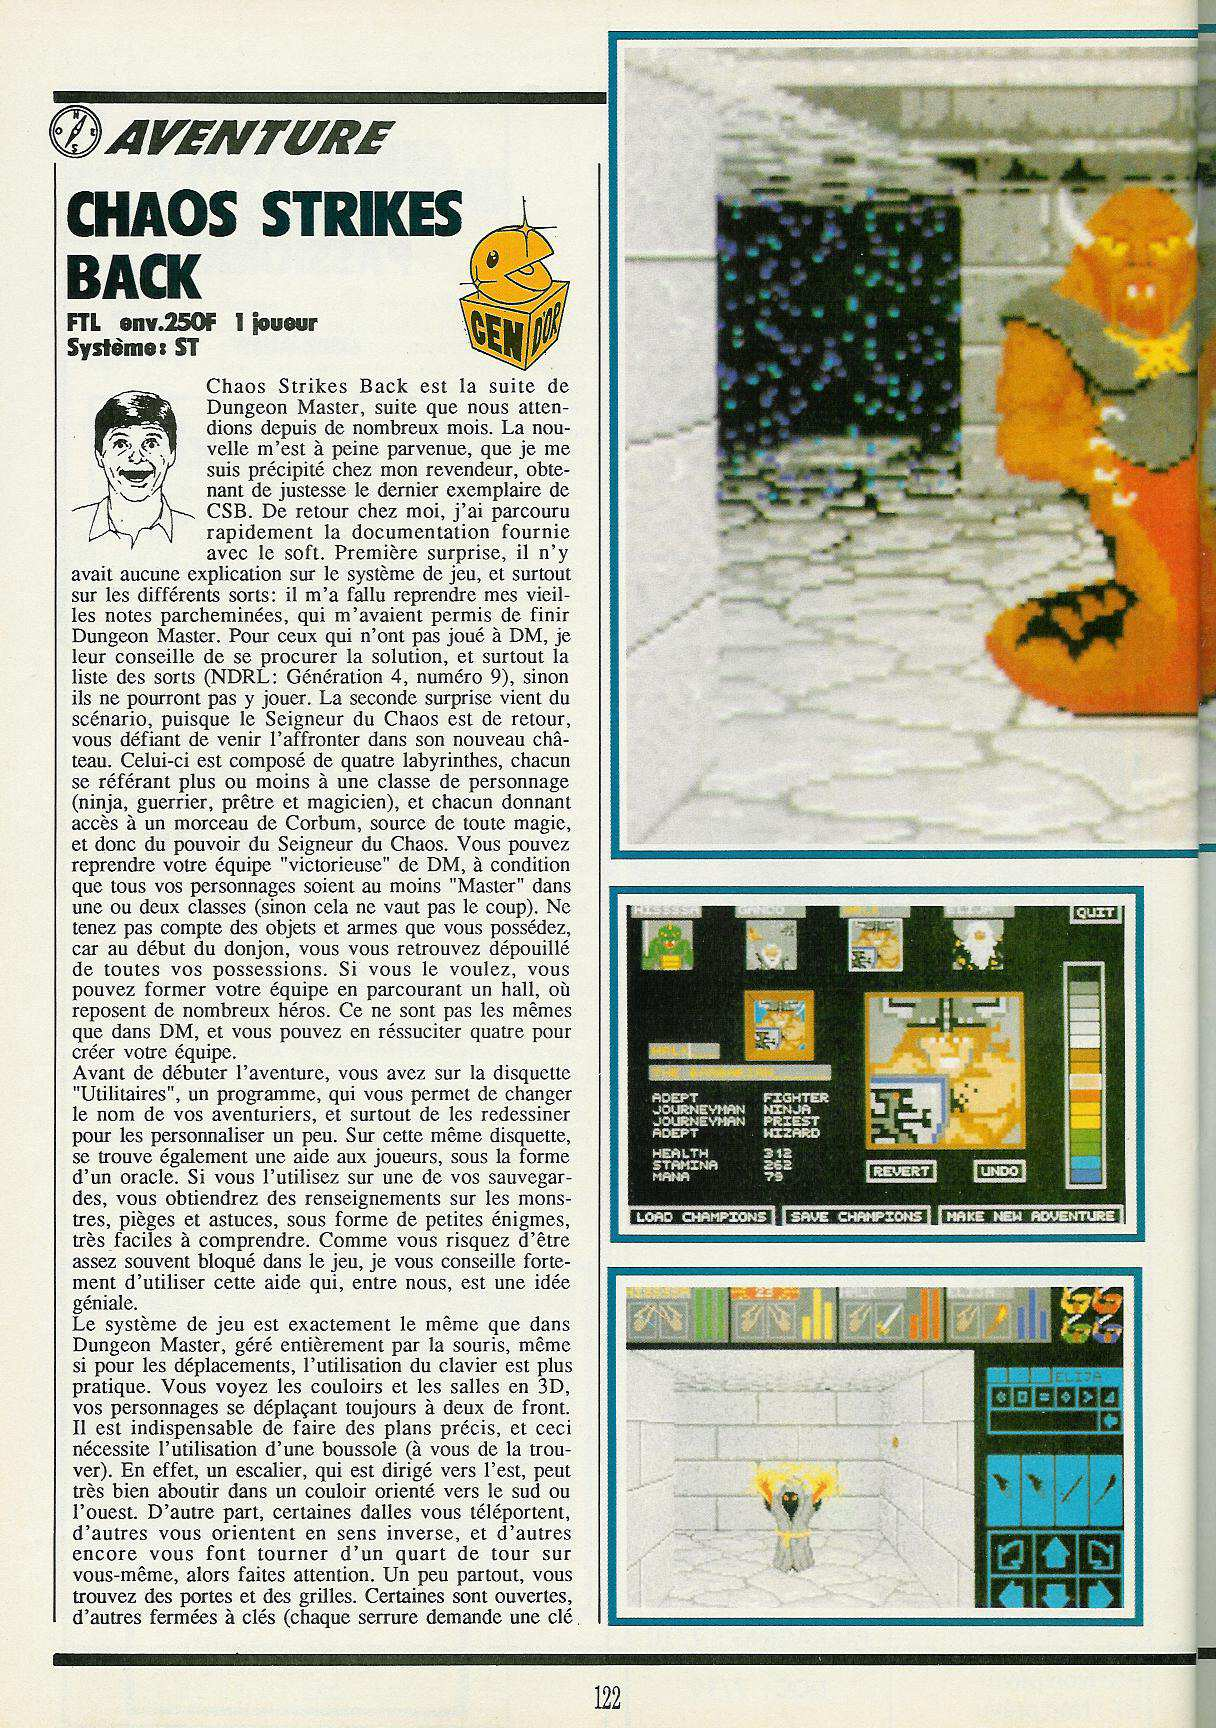 Chaos Strikes Back for Atari ST Review published in French magazine 'Gen4', Issue #19, February 1990, Pages 122